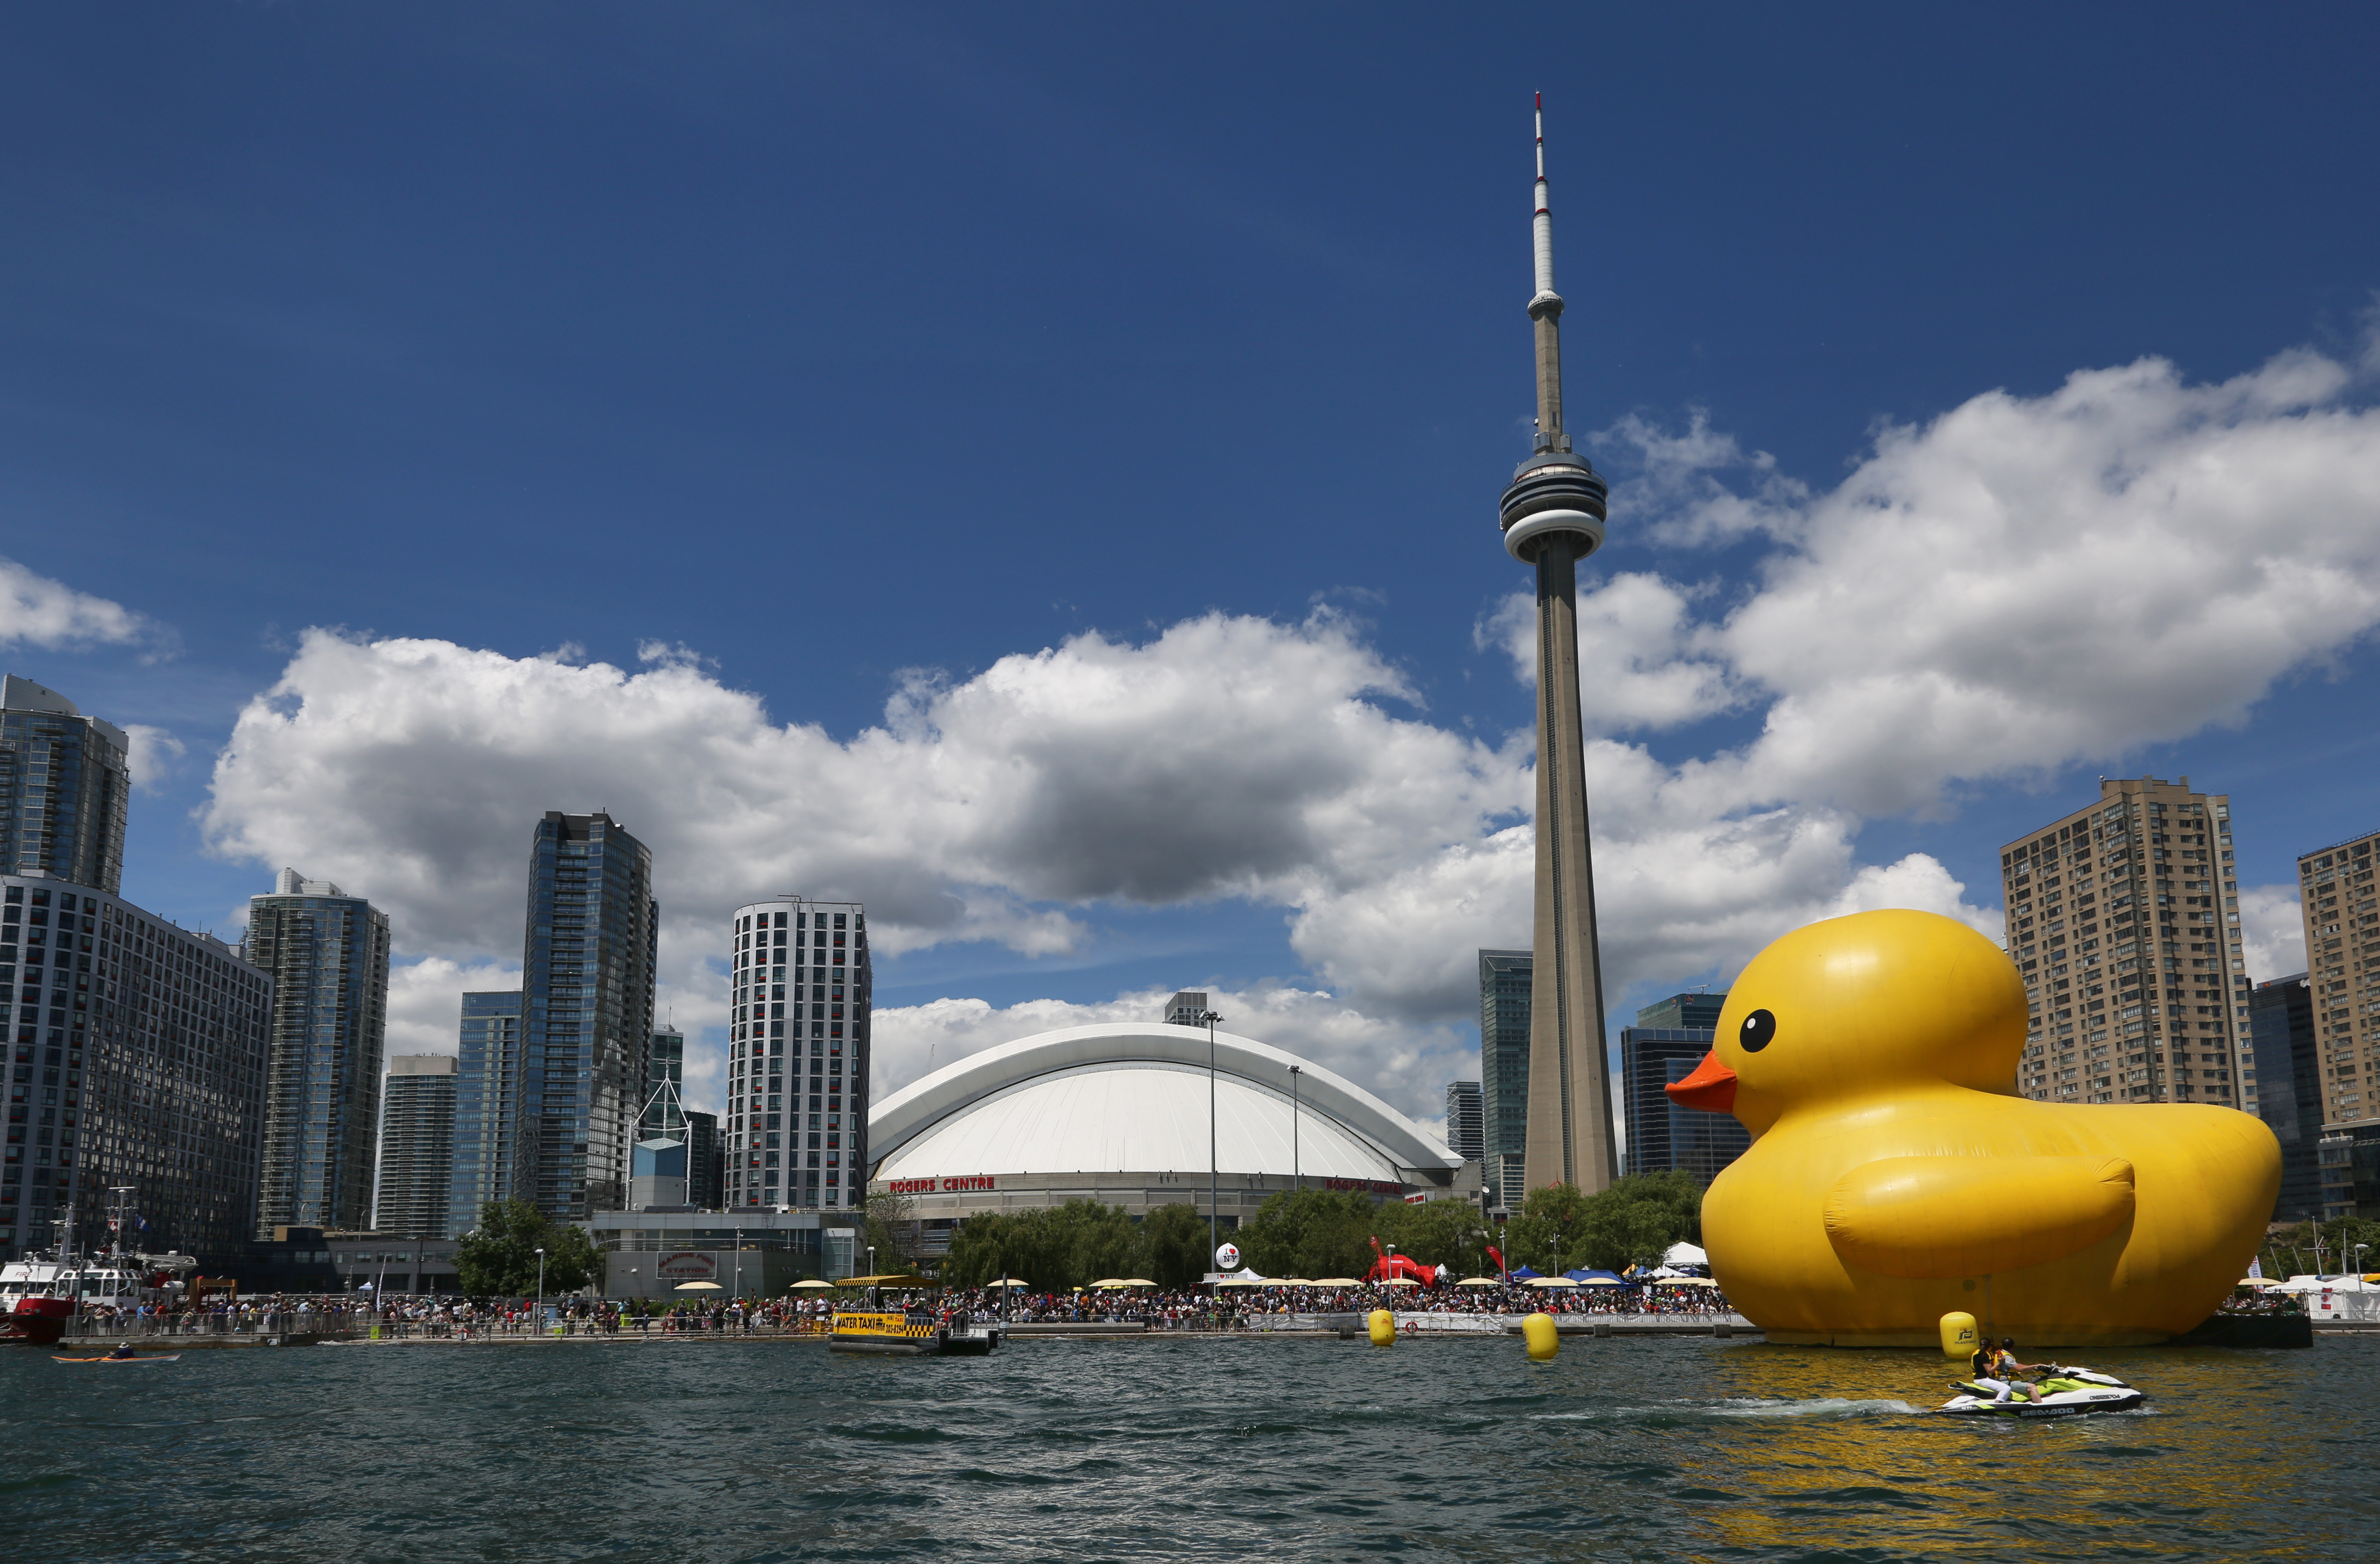 World's Largest Rubber Duck in Toronto